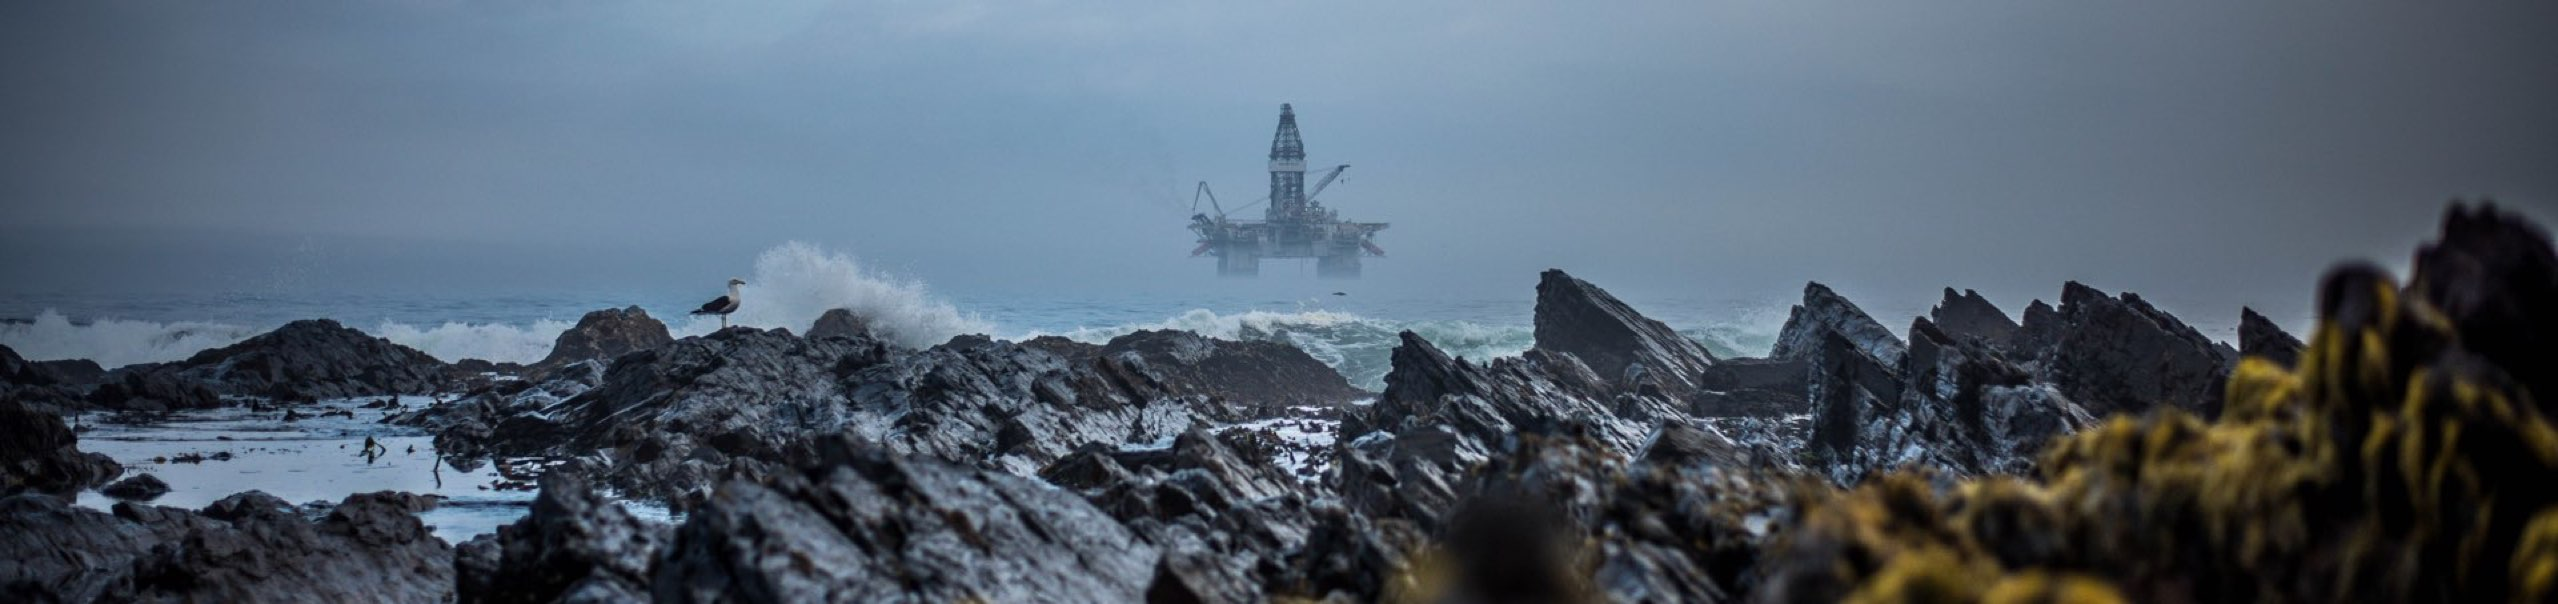 Rocky beach with an Oilrig in the view